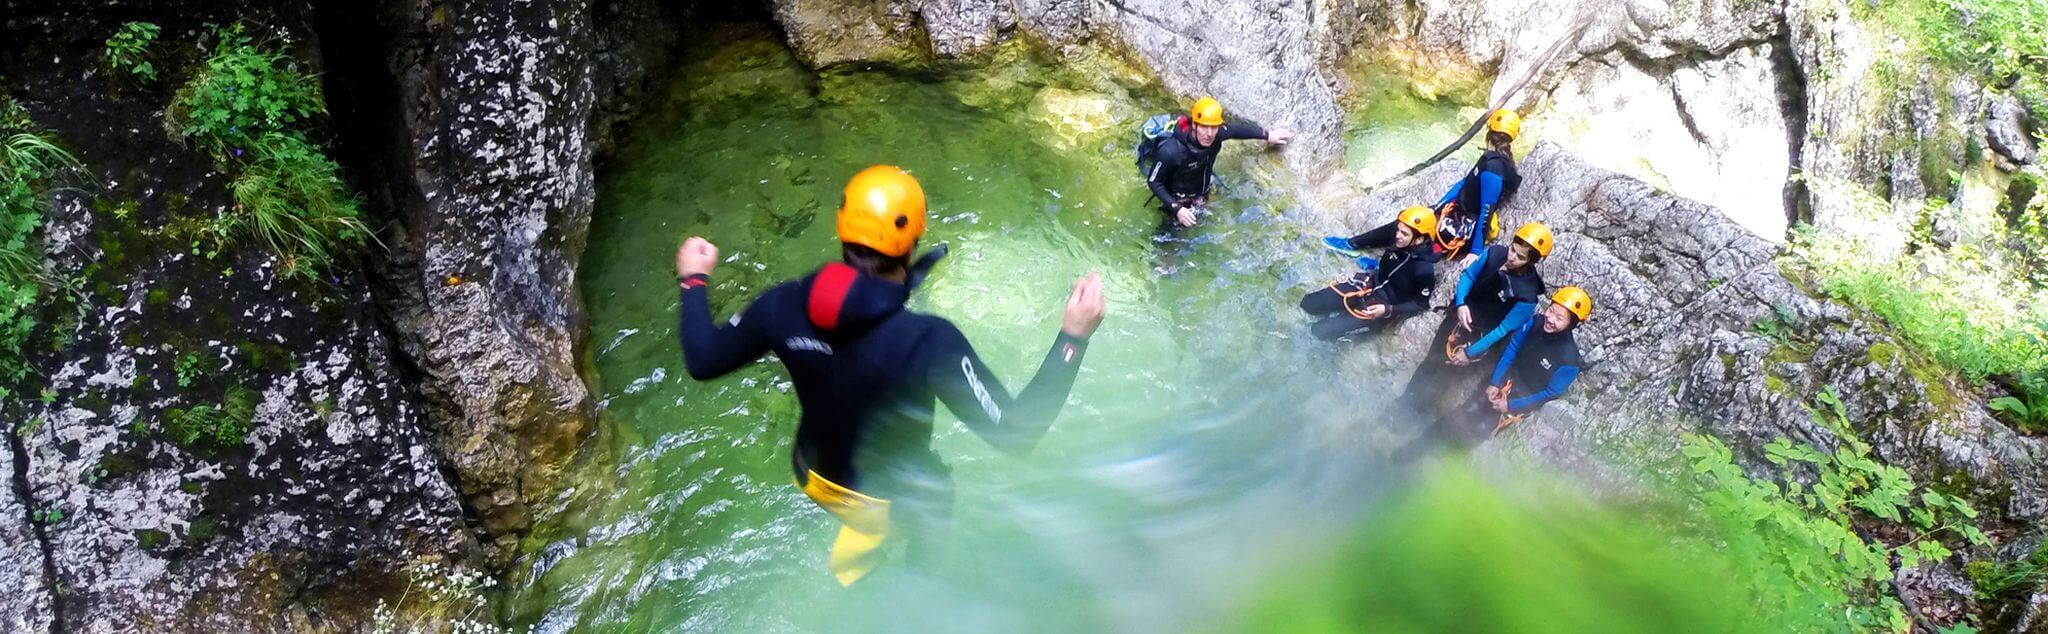 Canyoning in Nayarit